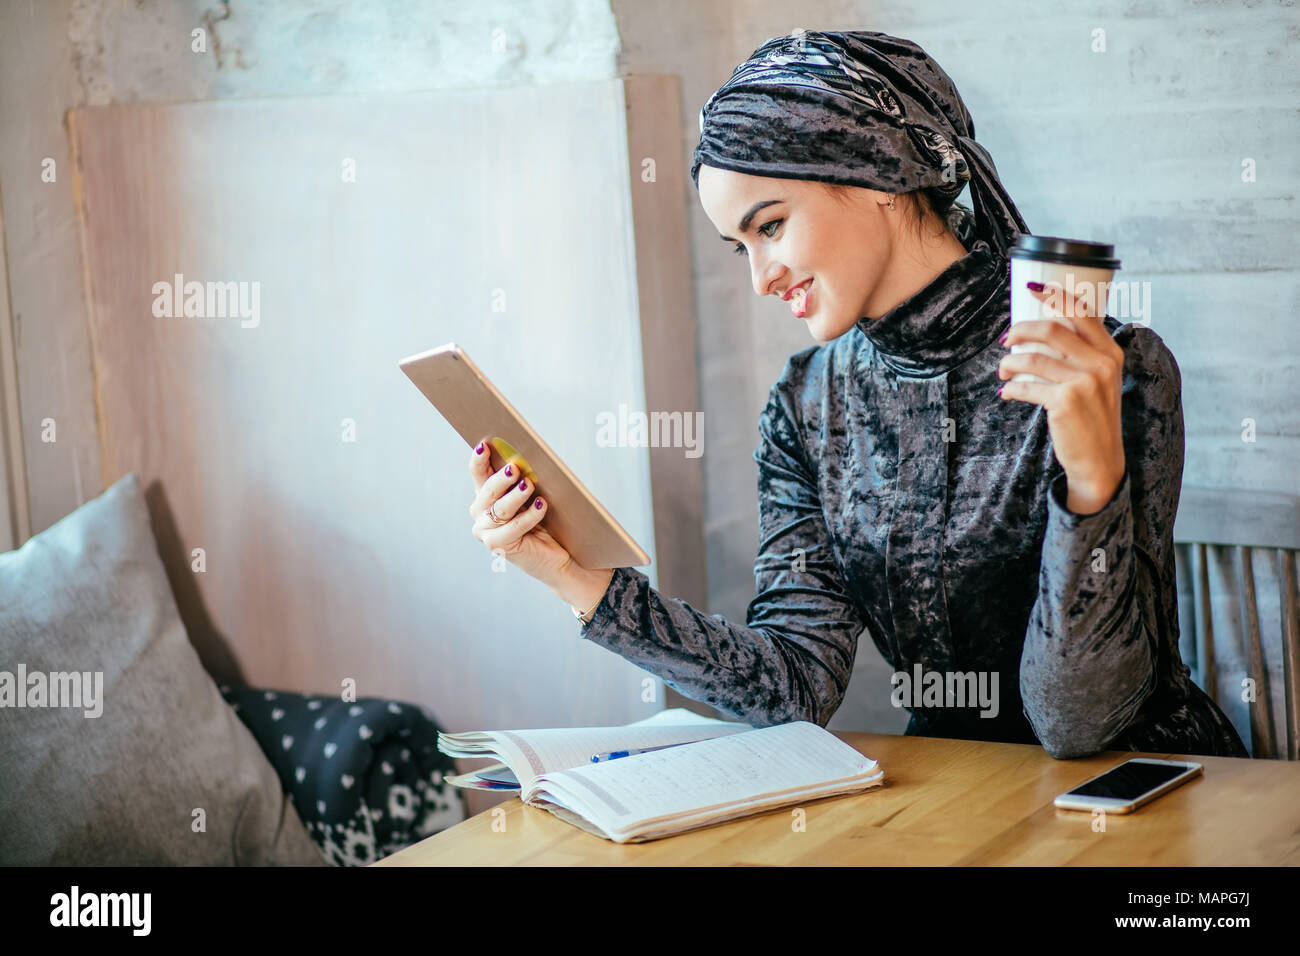 muslim women working with tablet and drink coffee in cafe - Stock Image